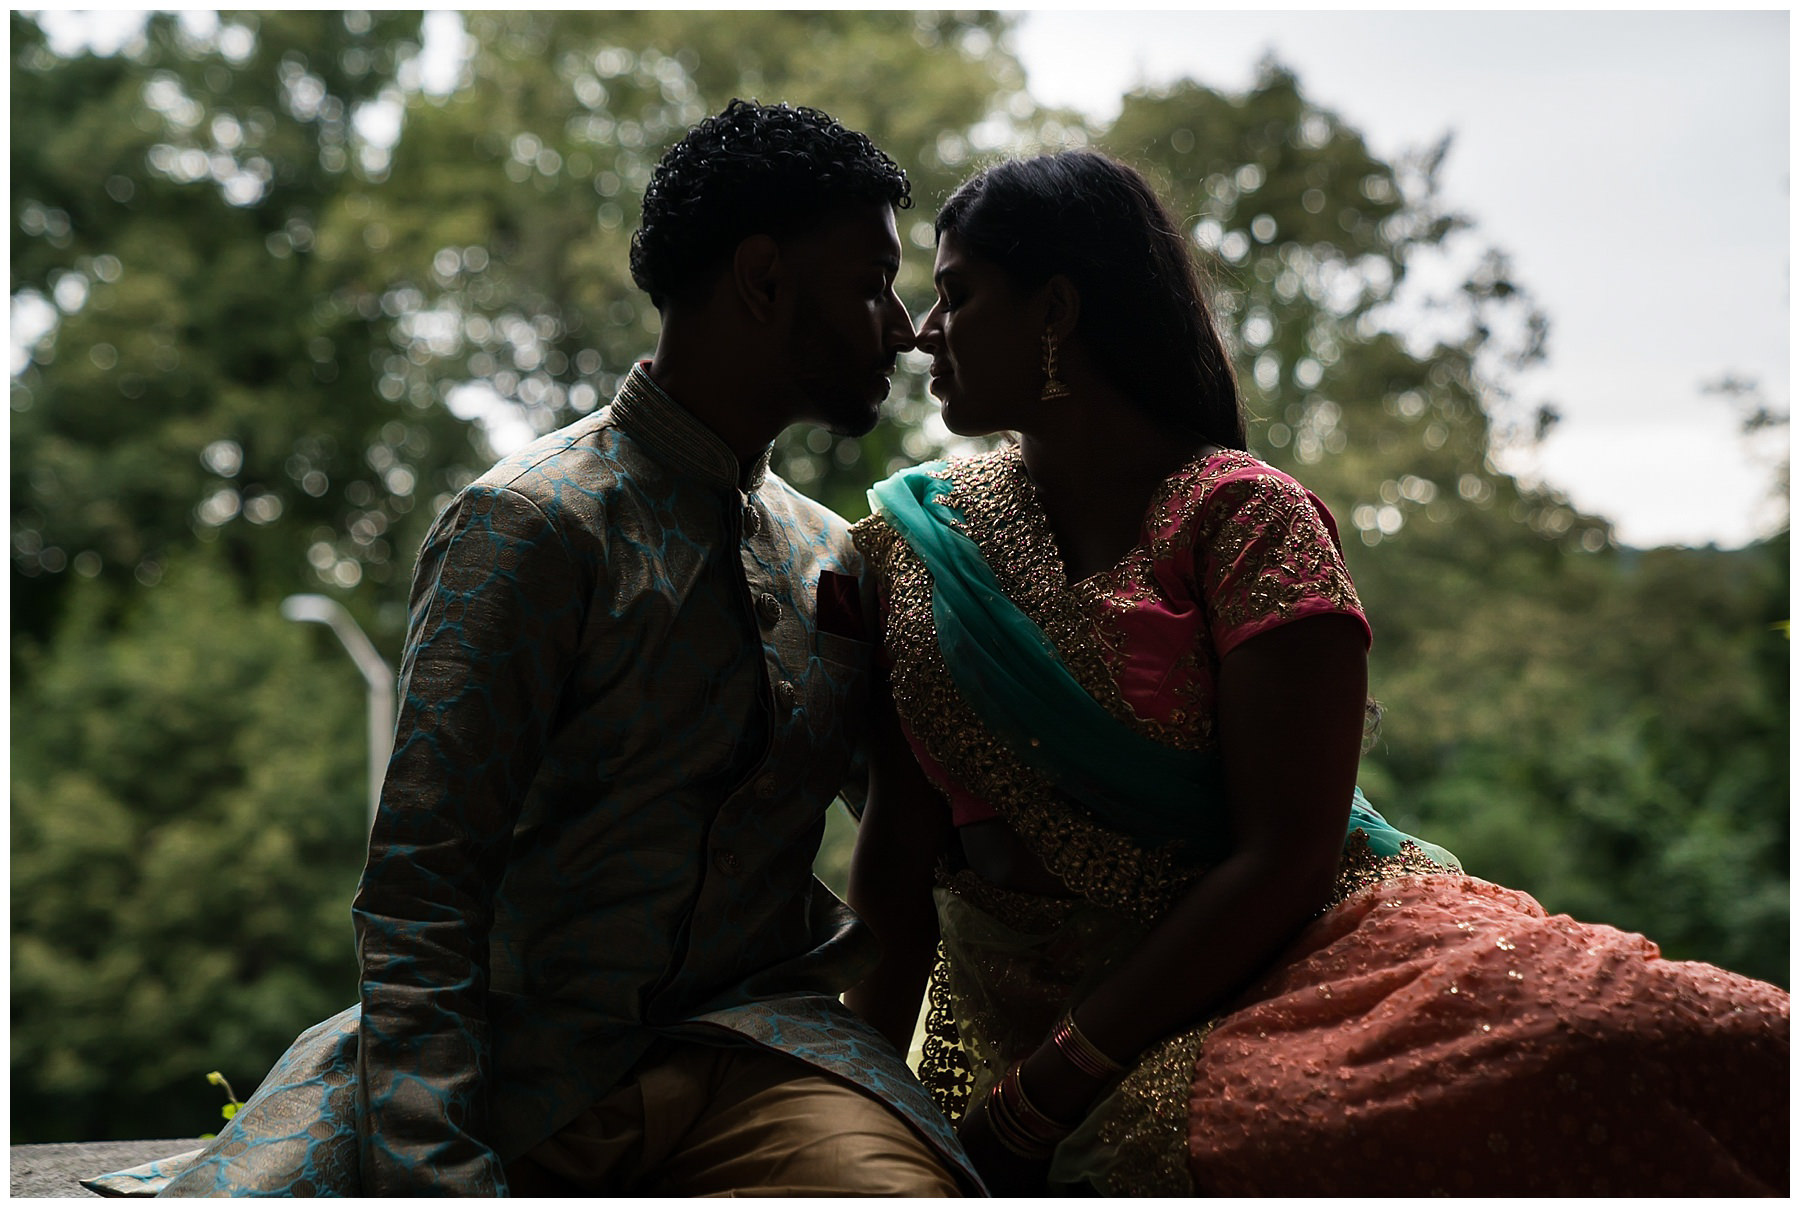 fort-tysons-park-new-york-engagement-shoot-sibyl-jithin-14.jpg